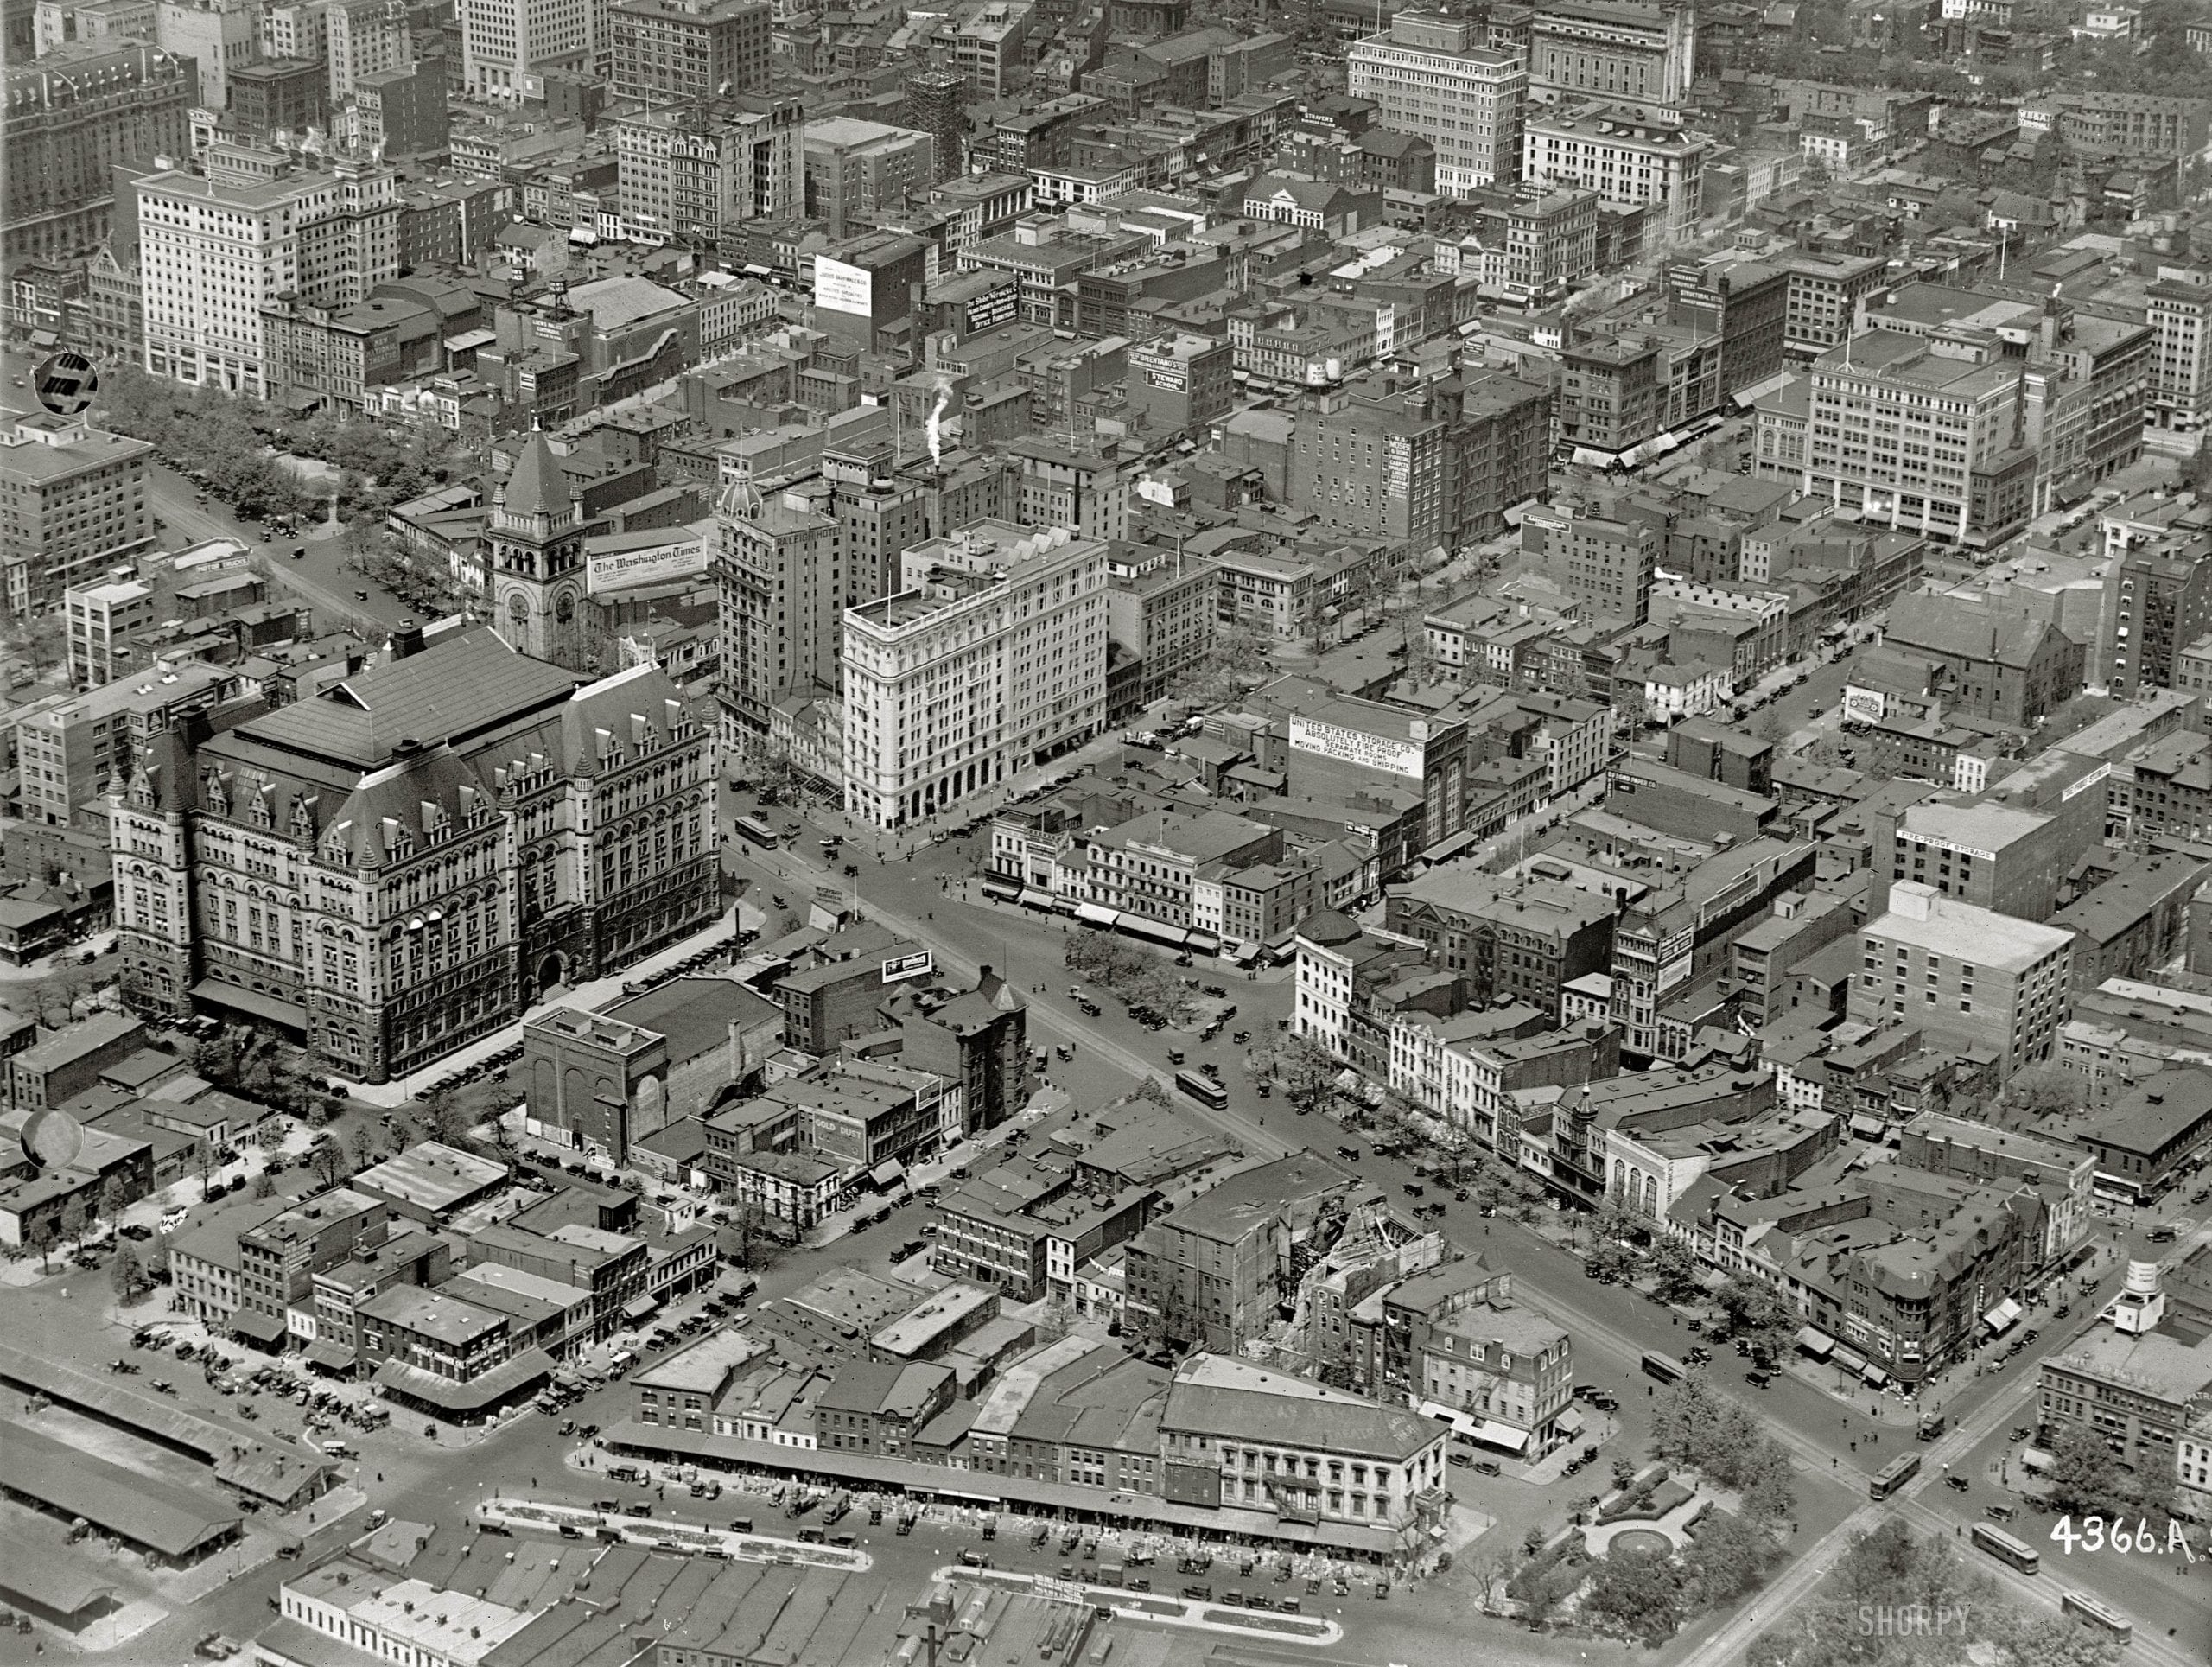 Whoa! Incredible 1922 Aerial Photograph of Pennsylvania Avenue